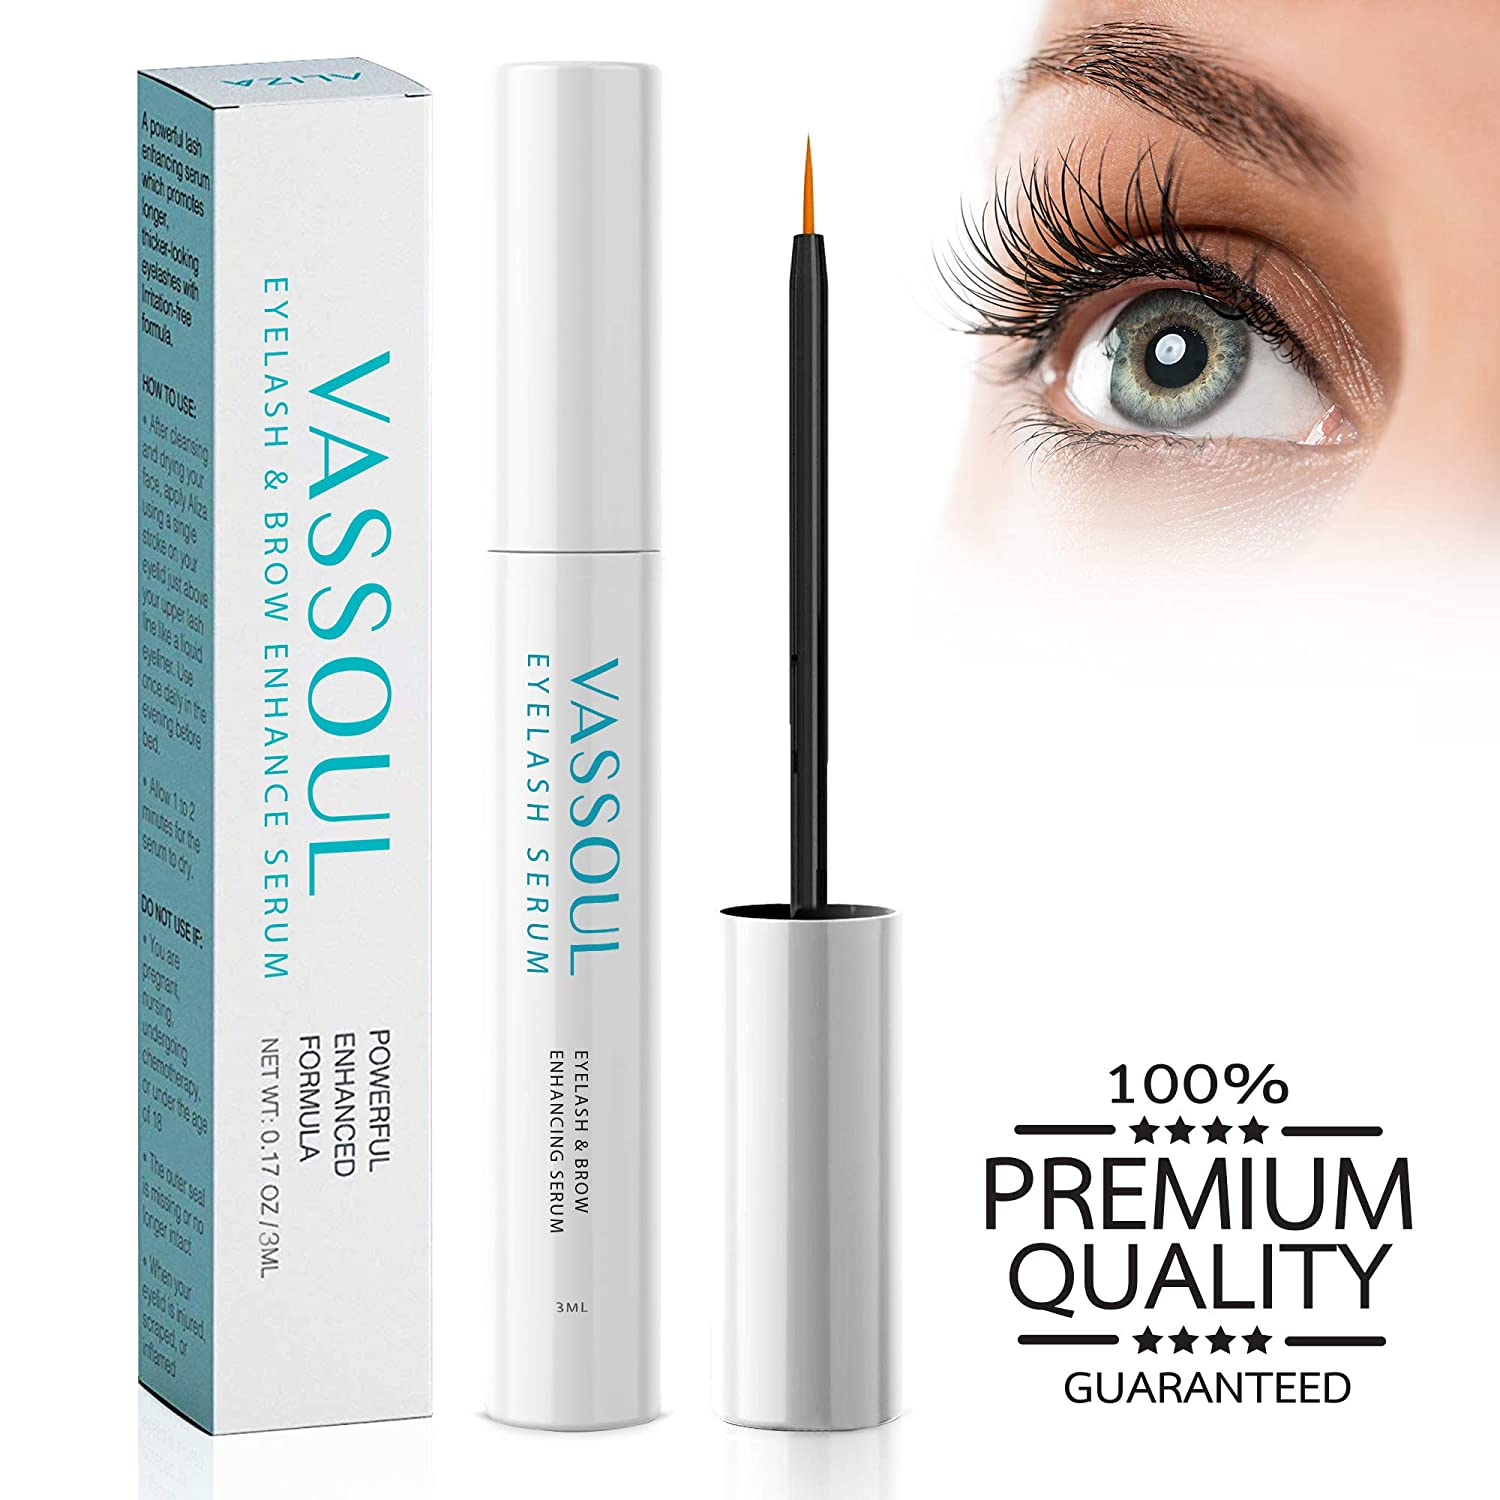 0111575f315 Amazon.com: VASSOUL Eyelash Growth Serum- Eyelash Enhancer Lash Eyebrow  Growth Serum for Longer and Thicker Eyelash, Fuller and Healthier Eyebrow,100%  ...